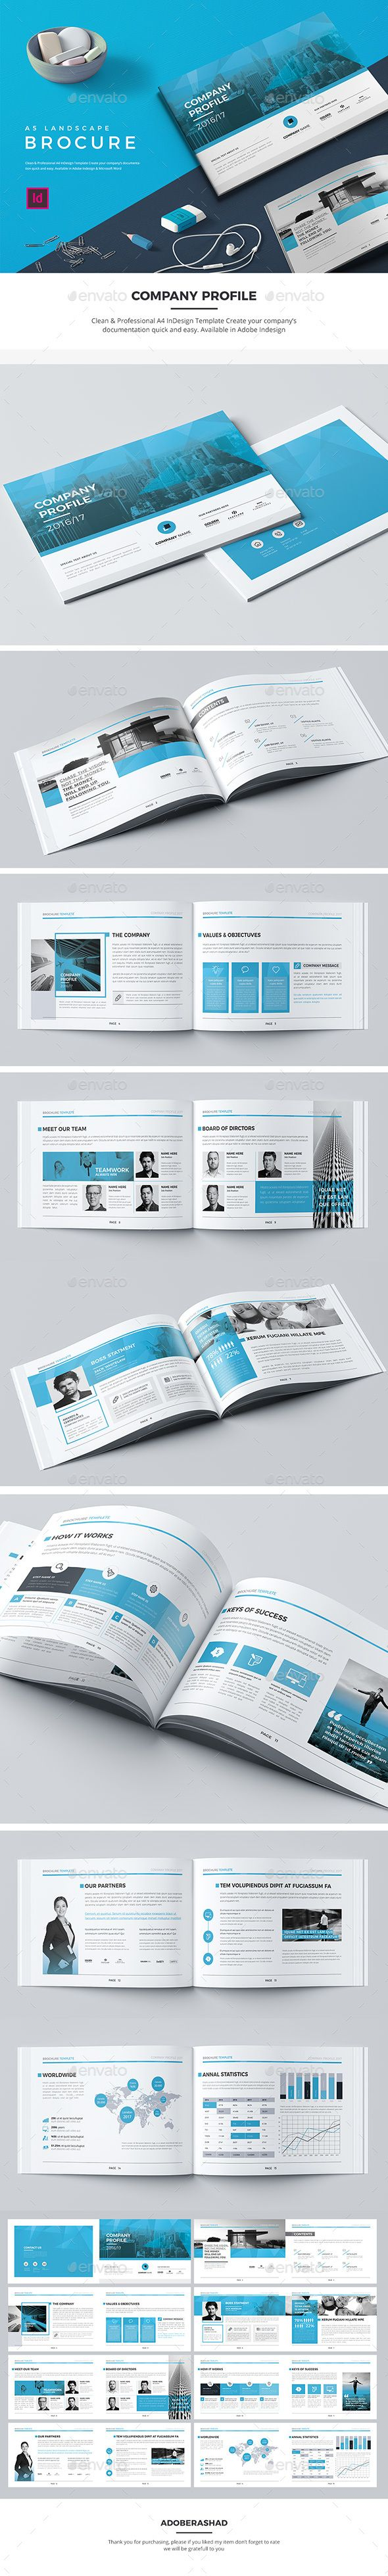 A5 Landscape Company Profile — InDesign INDD #corporate • Download ➝ https://graphicriver.net/item/a5-landscape-company-profile/19908161?ref=pxcr